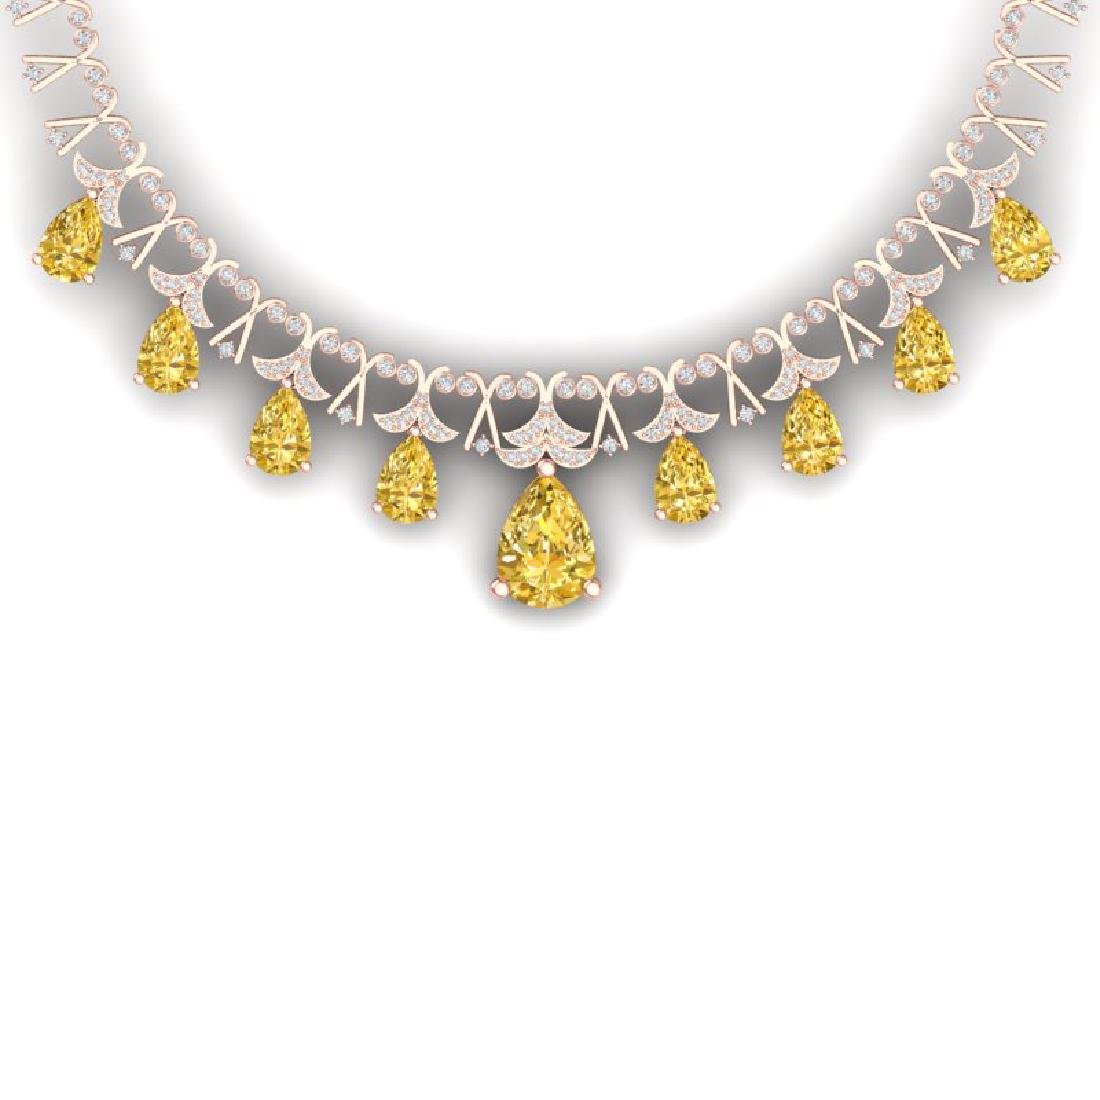 55.49 CTW Royalty Canary Citrine & VS Diamond Necklace